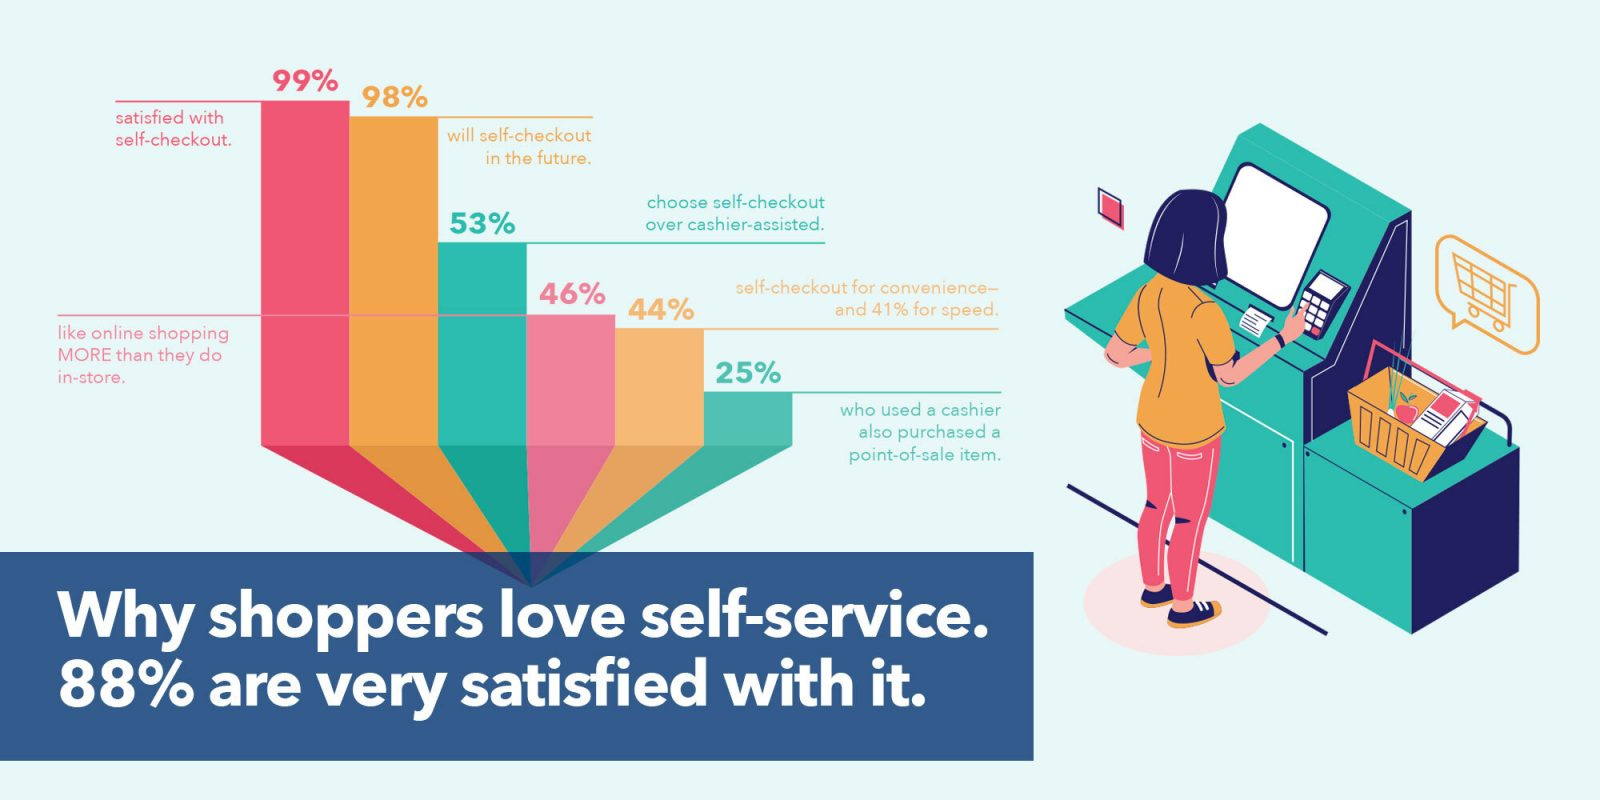 Why 88% are VERY satisfied with self-checkout…